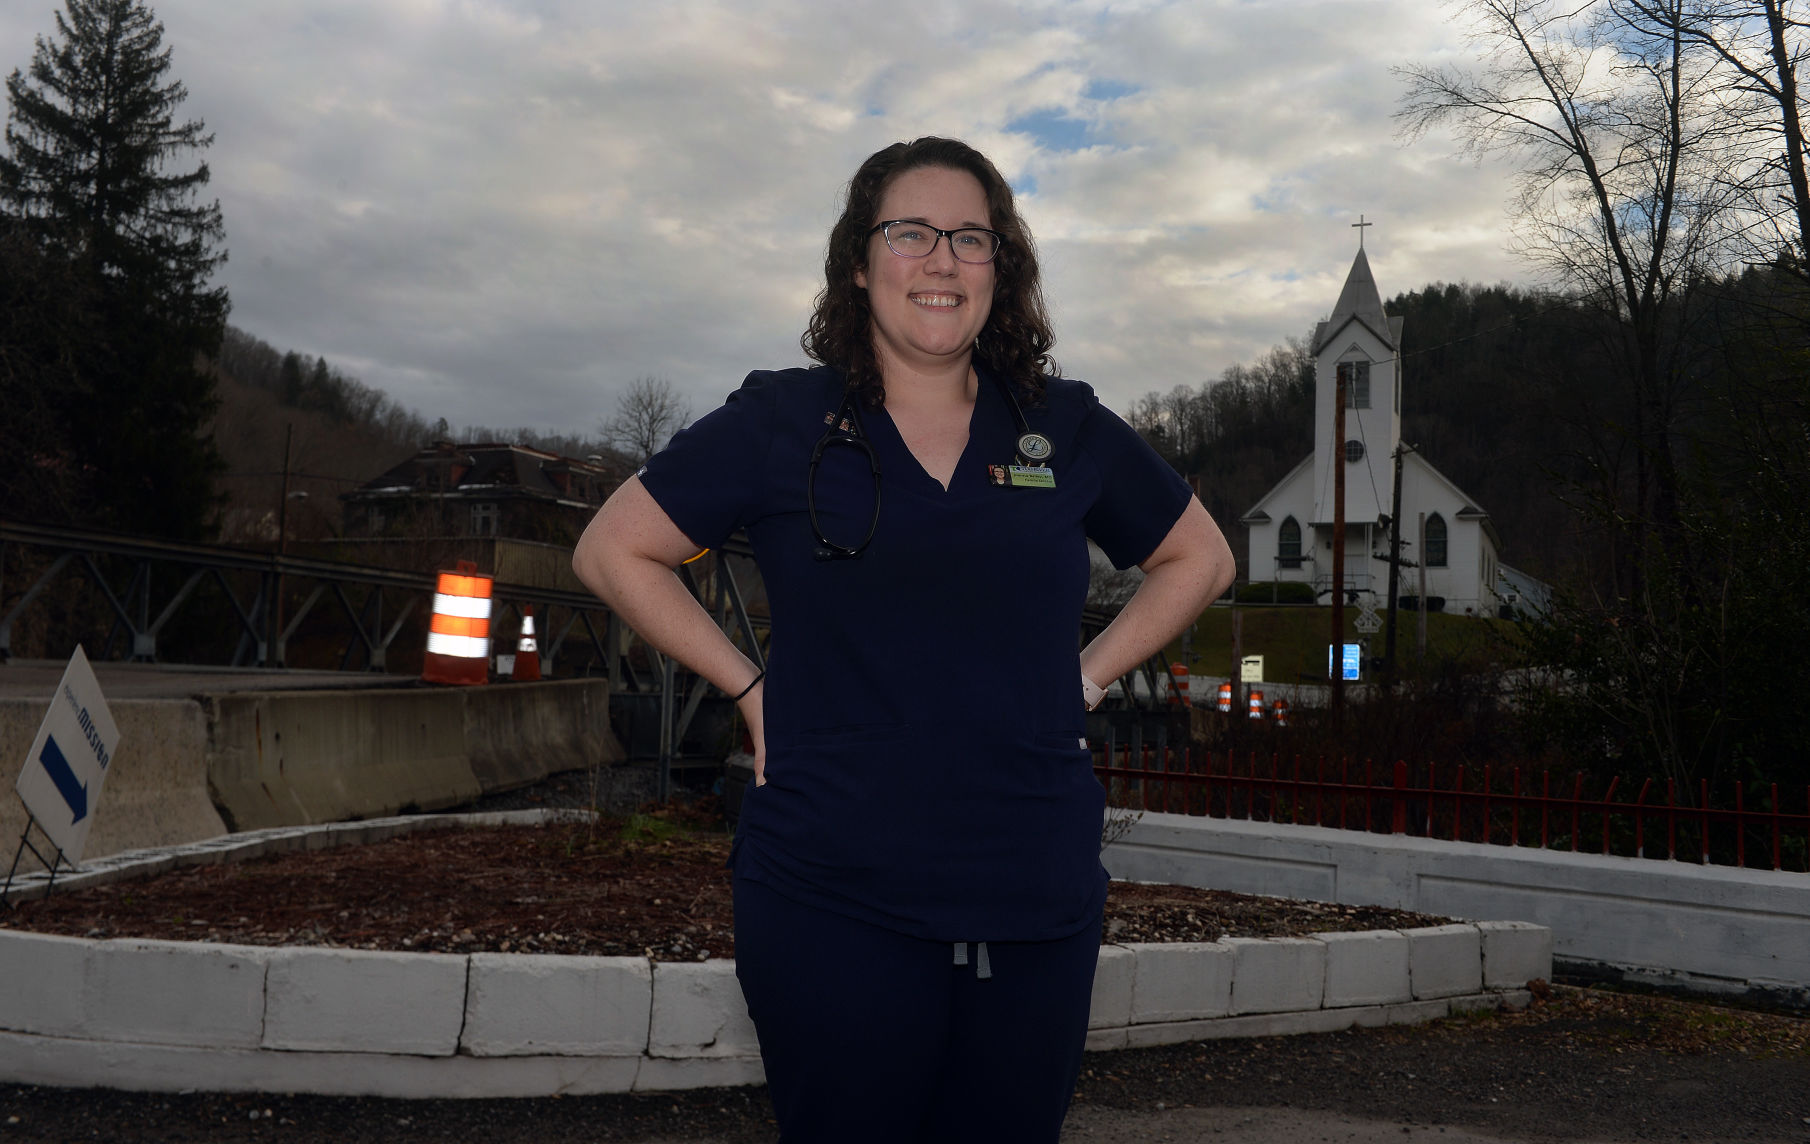 Dr. Joanna Bailey stands outside of the Tug River Health Association in Gary. Bailey is especially concerned about the effect potentially unclean water can have on her patients throughout Southern West Virginia.